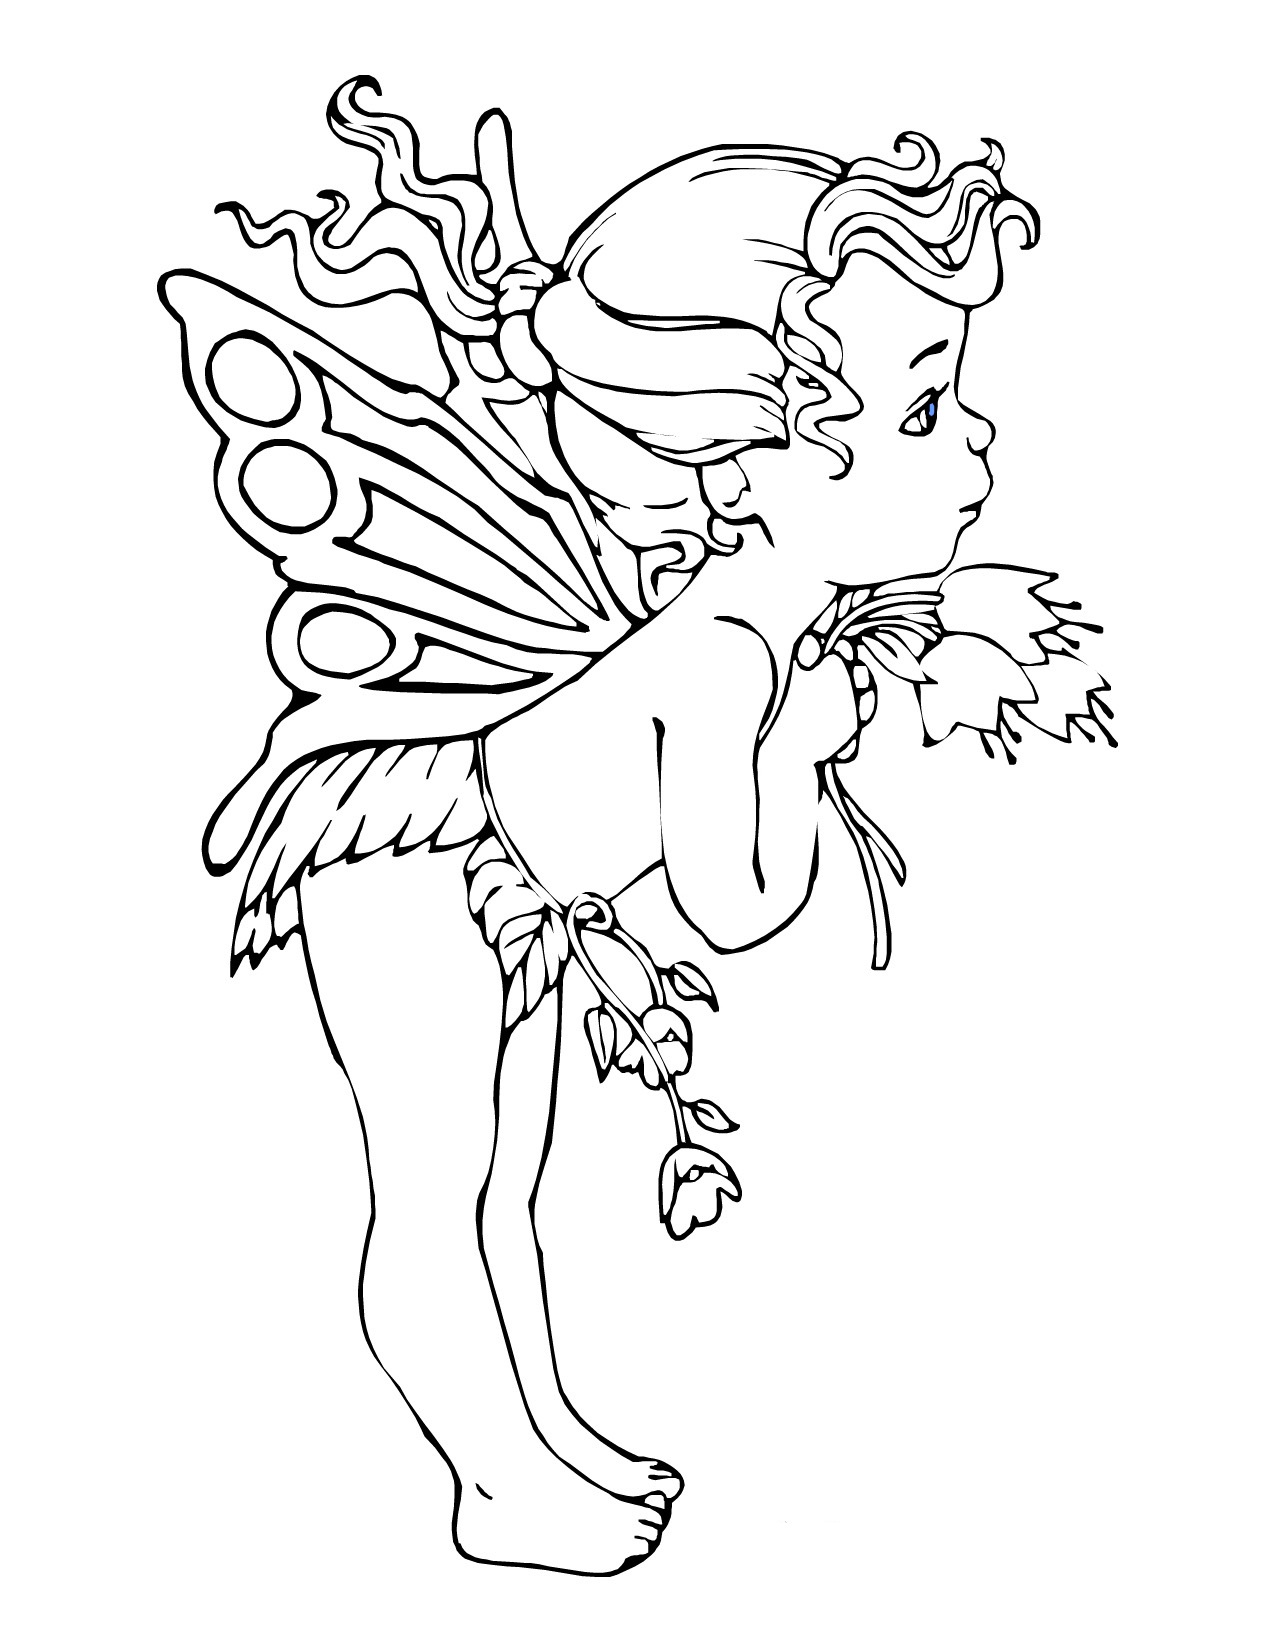 Colouring Pages To Print For Free : Free printable fairy coloring pages for kids